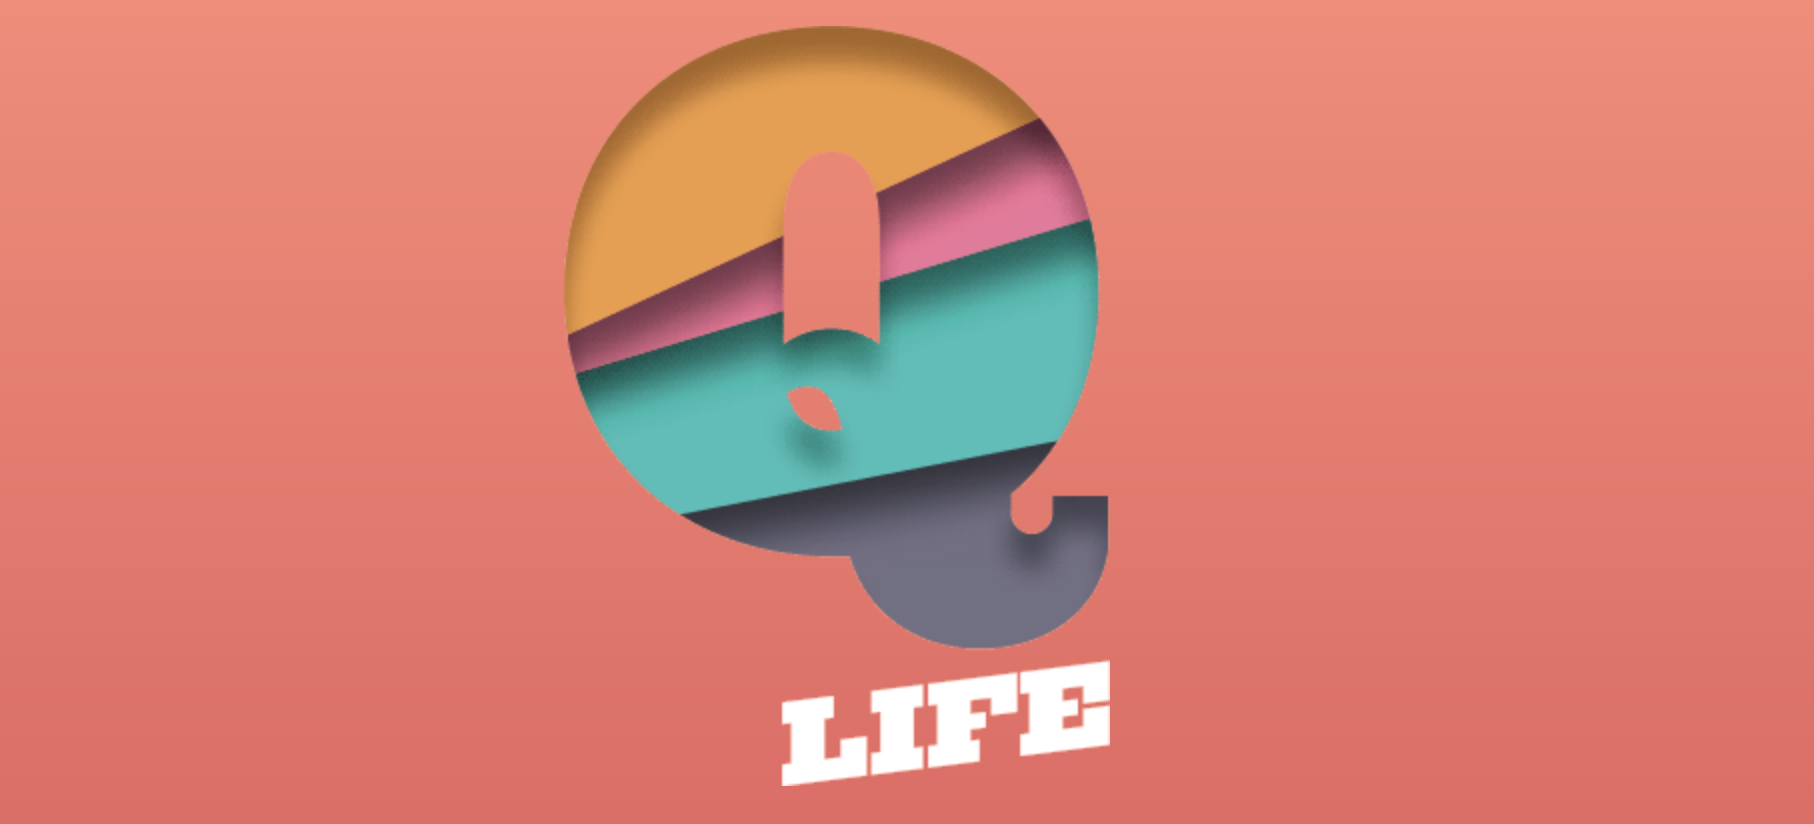 Qlife - National LGBTI telephone counselling service